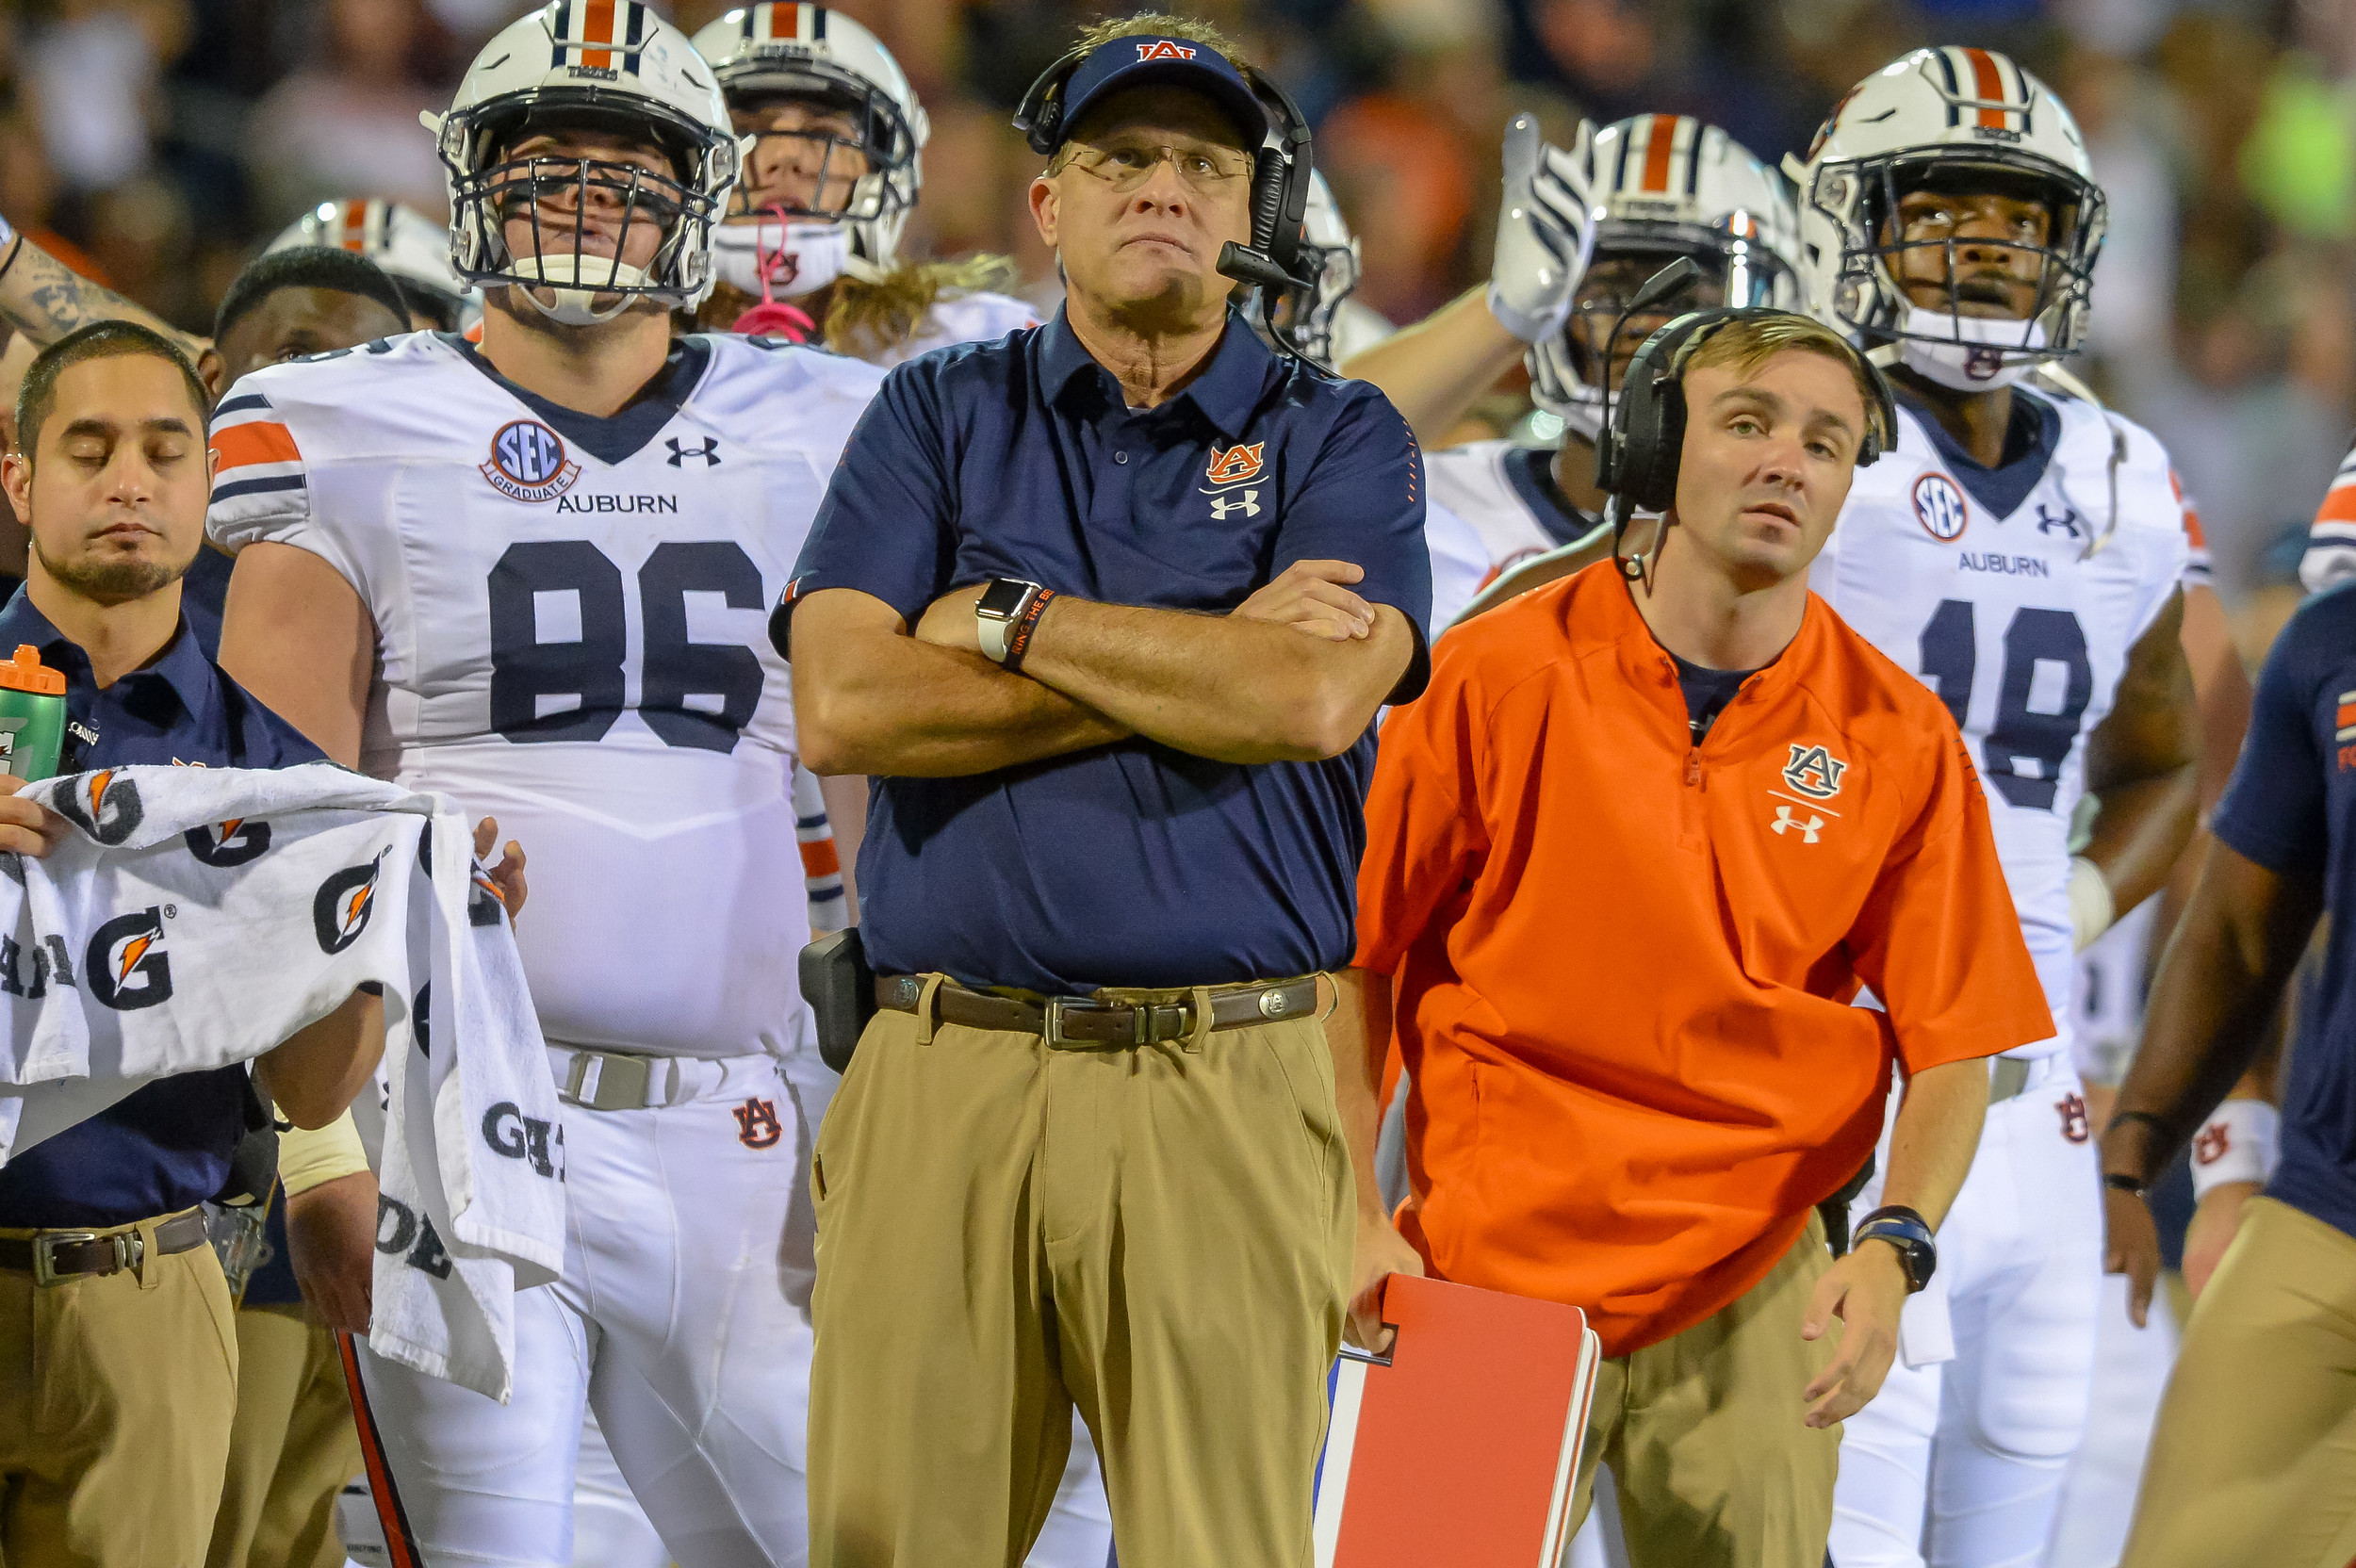 Auburn Tigers head coach Gus Malzahn awaits a replay decision during the second half of Saturday's game, at Davis Wade Stadium in Starkville, MS. Daily Mountain Eagle -  Jeff Johnsey